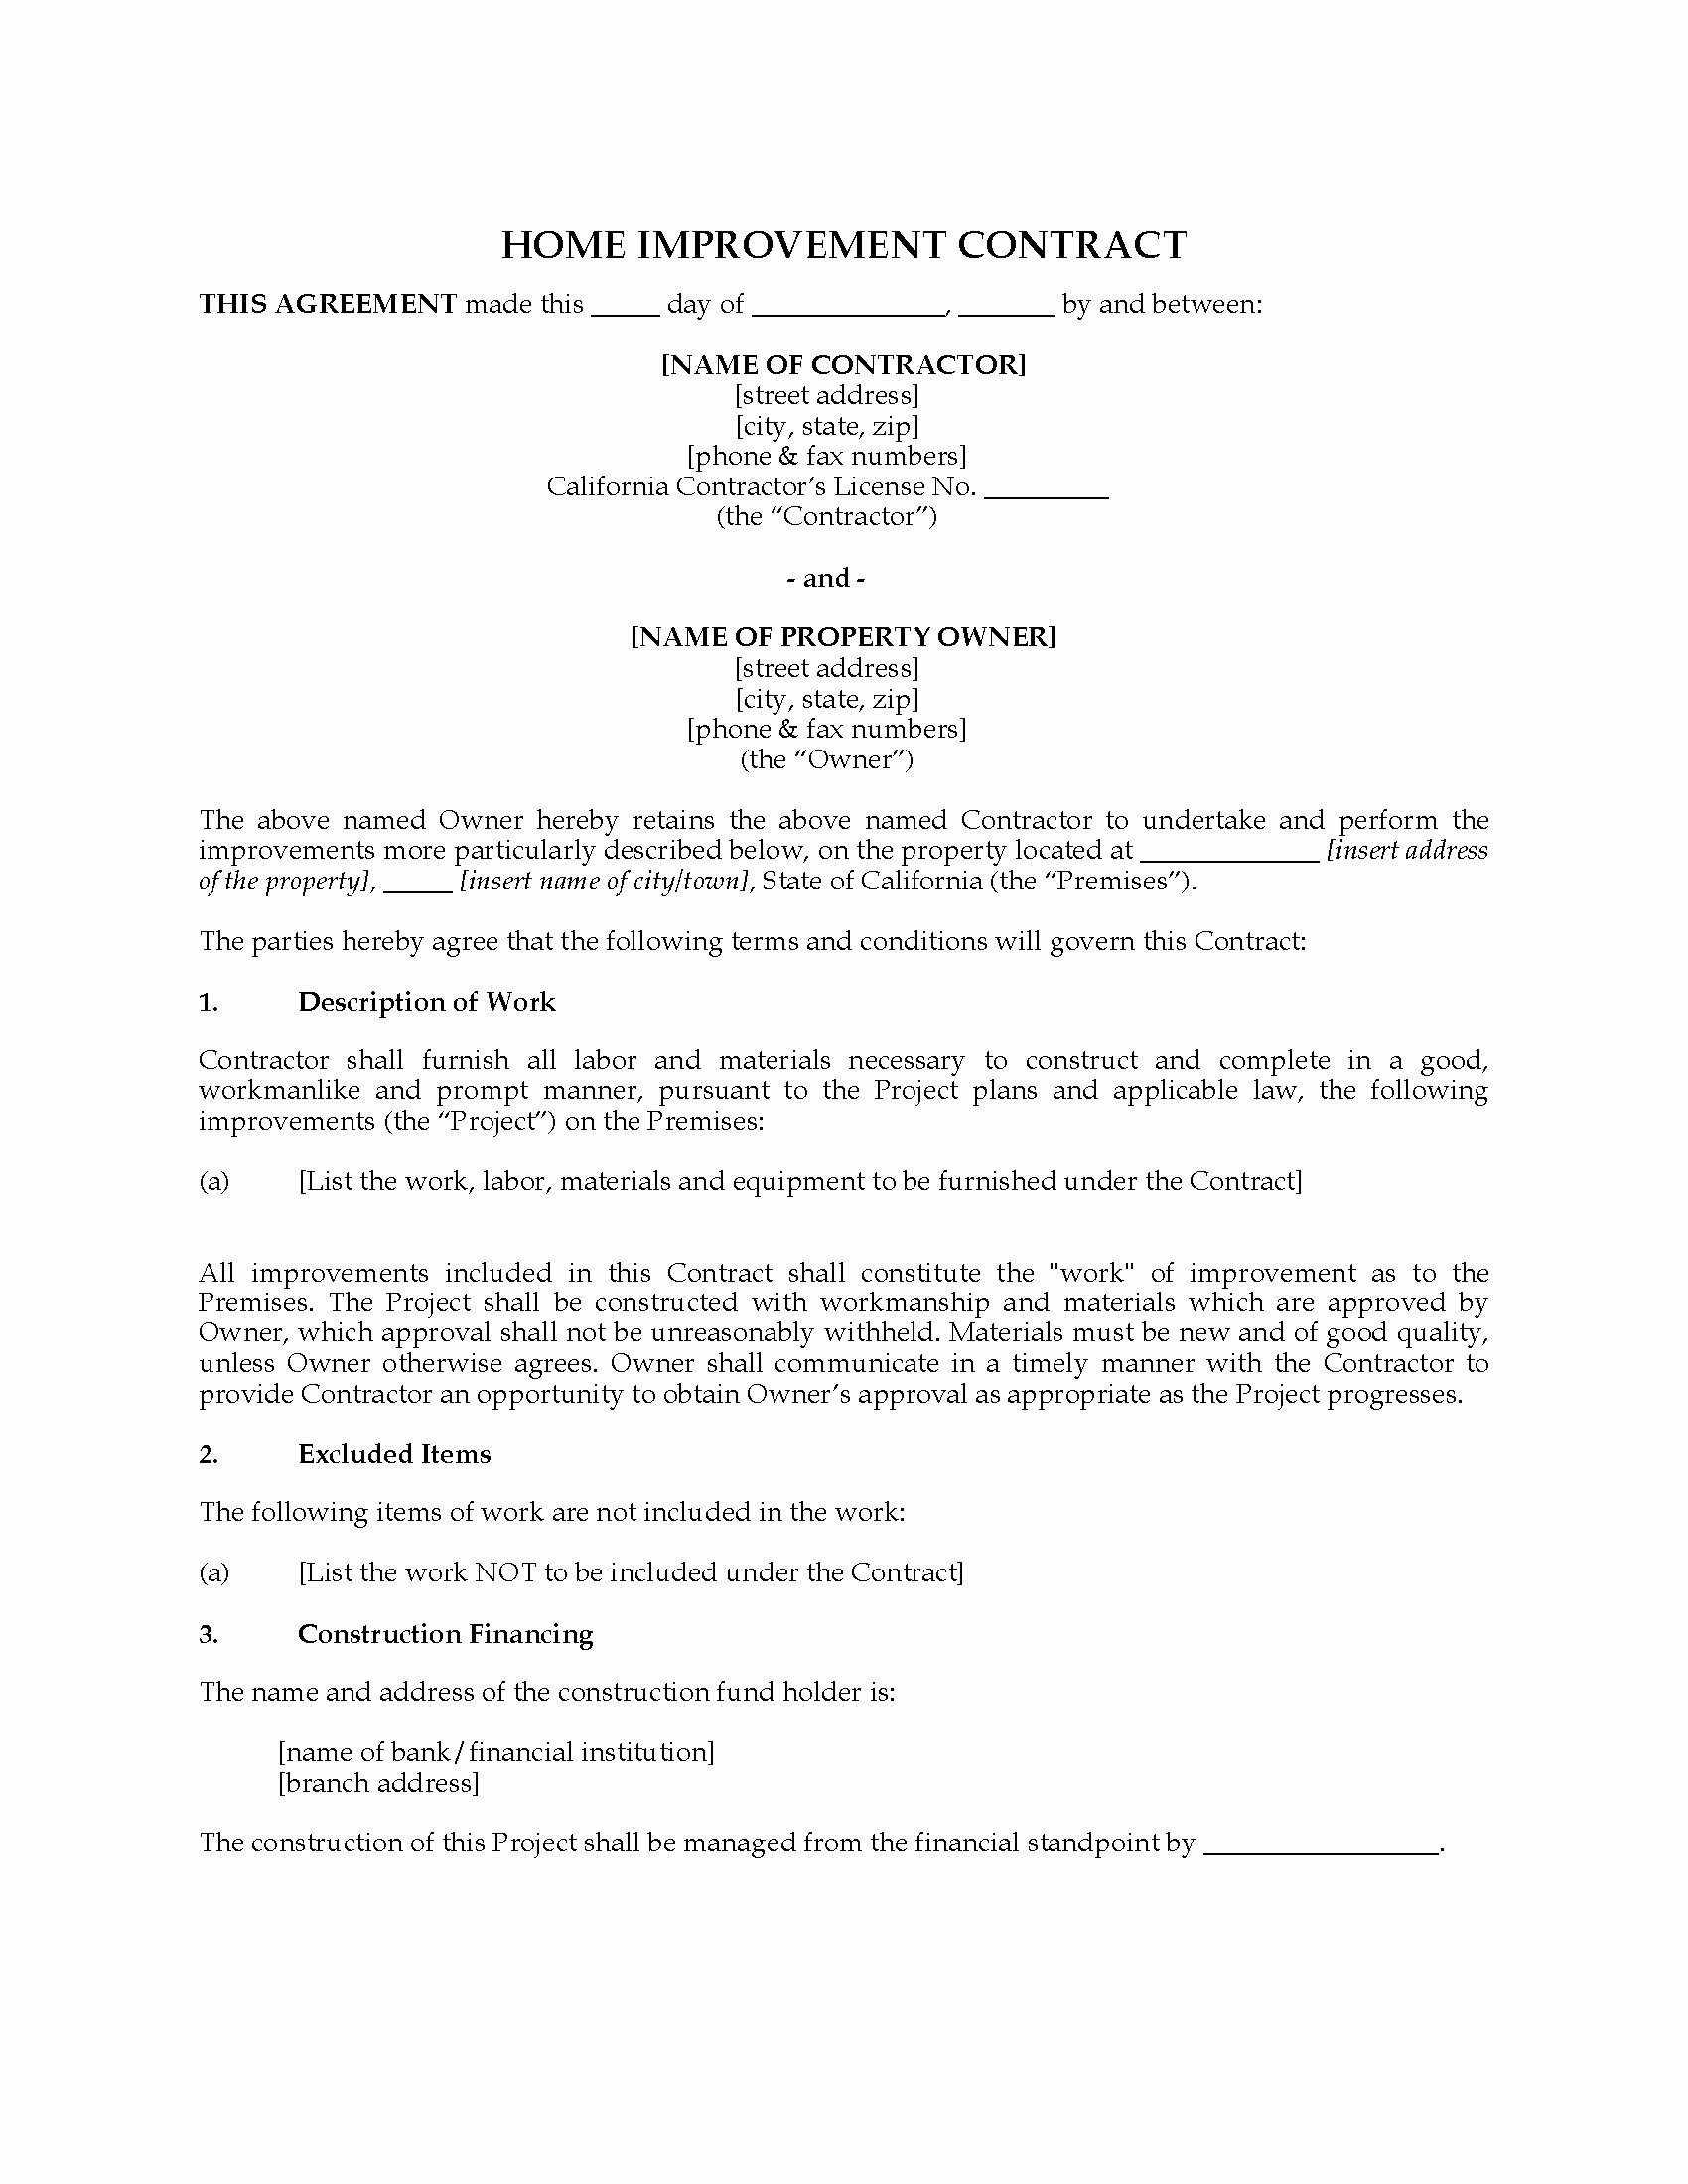 Home Improvement Contract Template Best Of Contract Home Improvement Contract Template